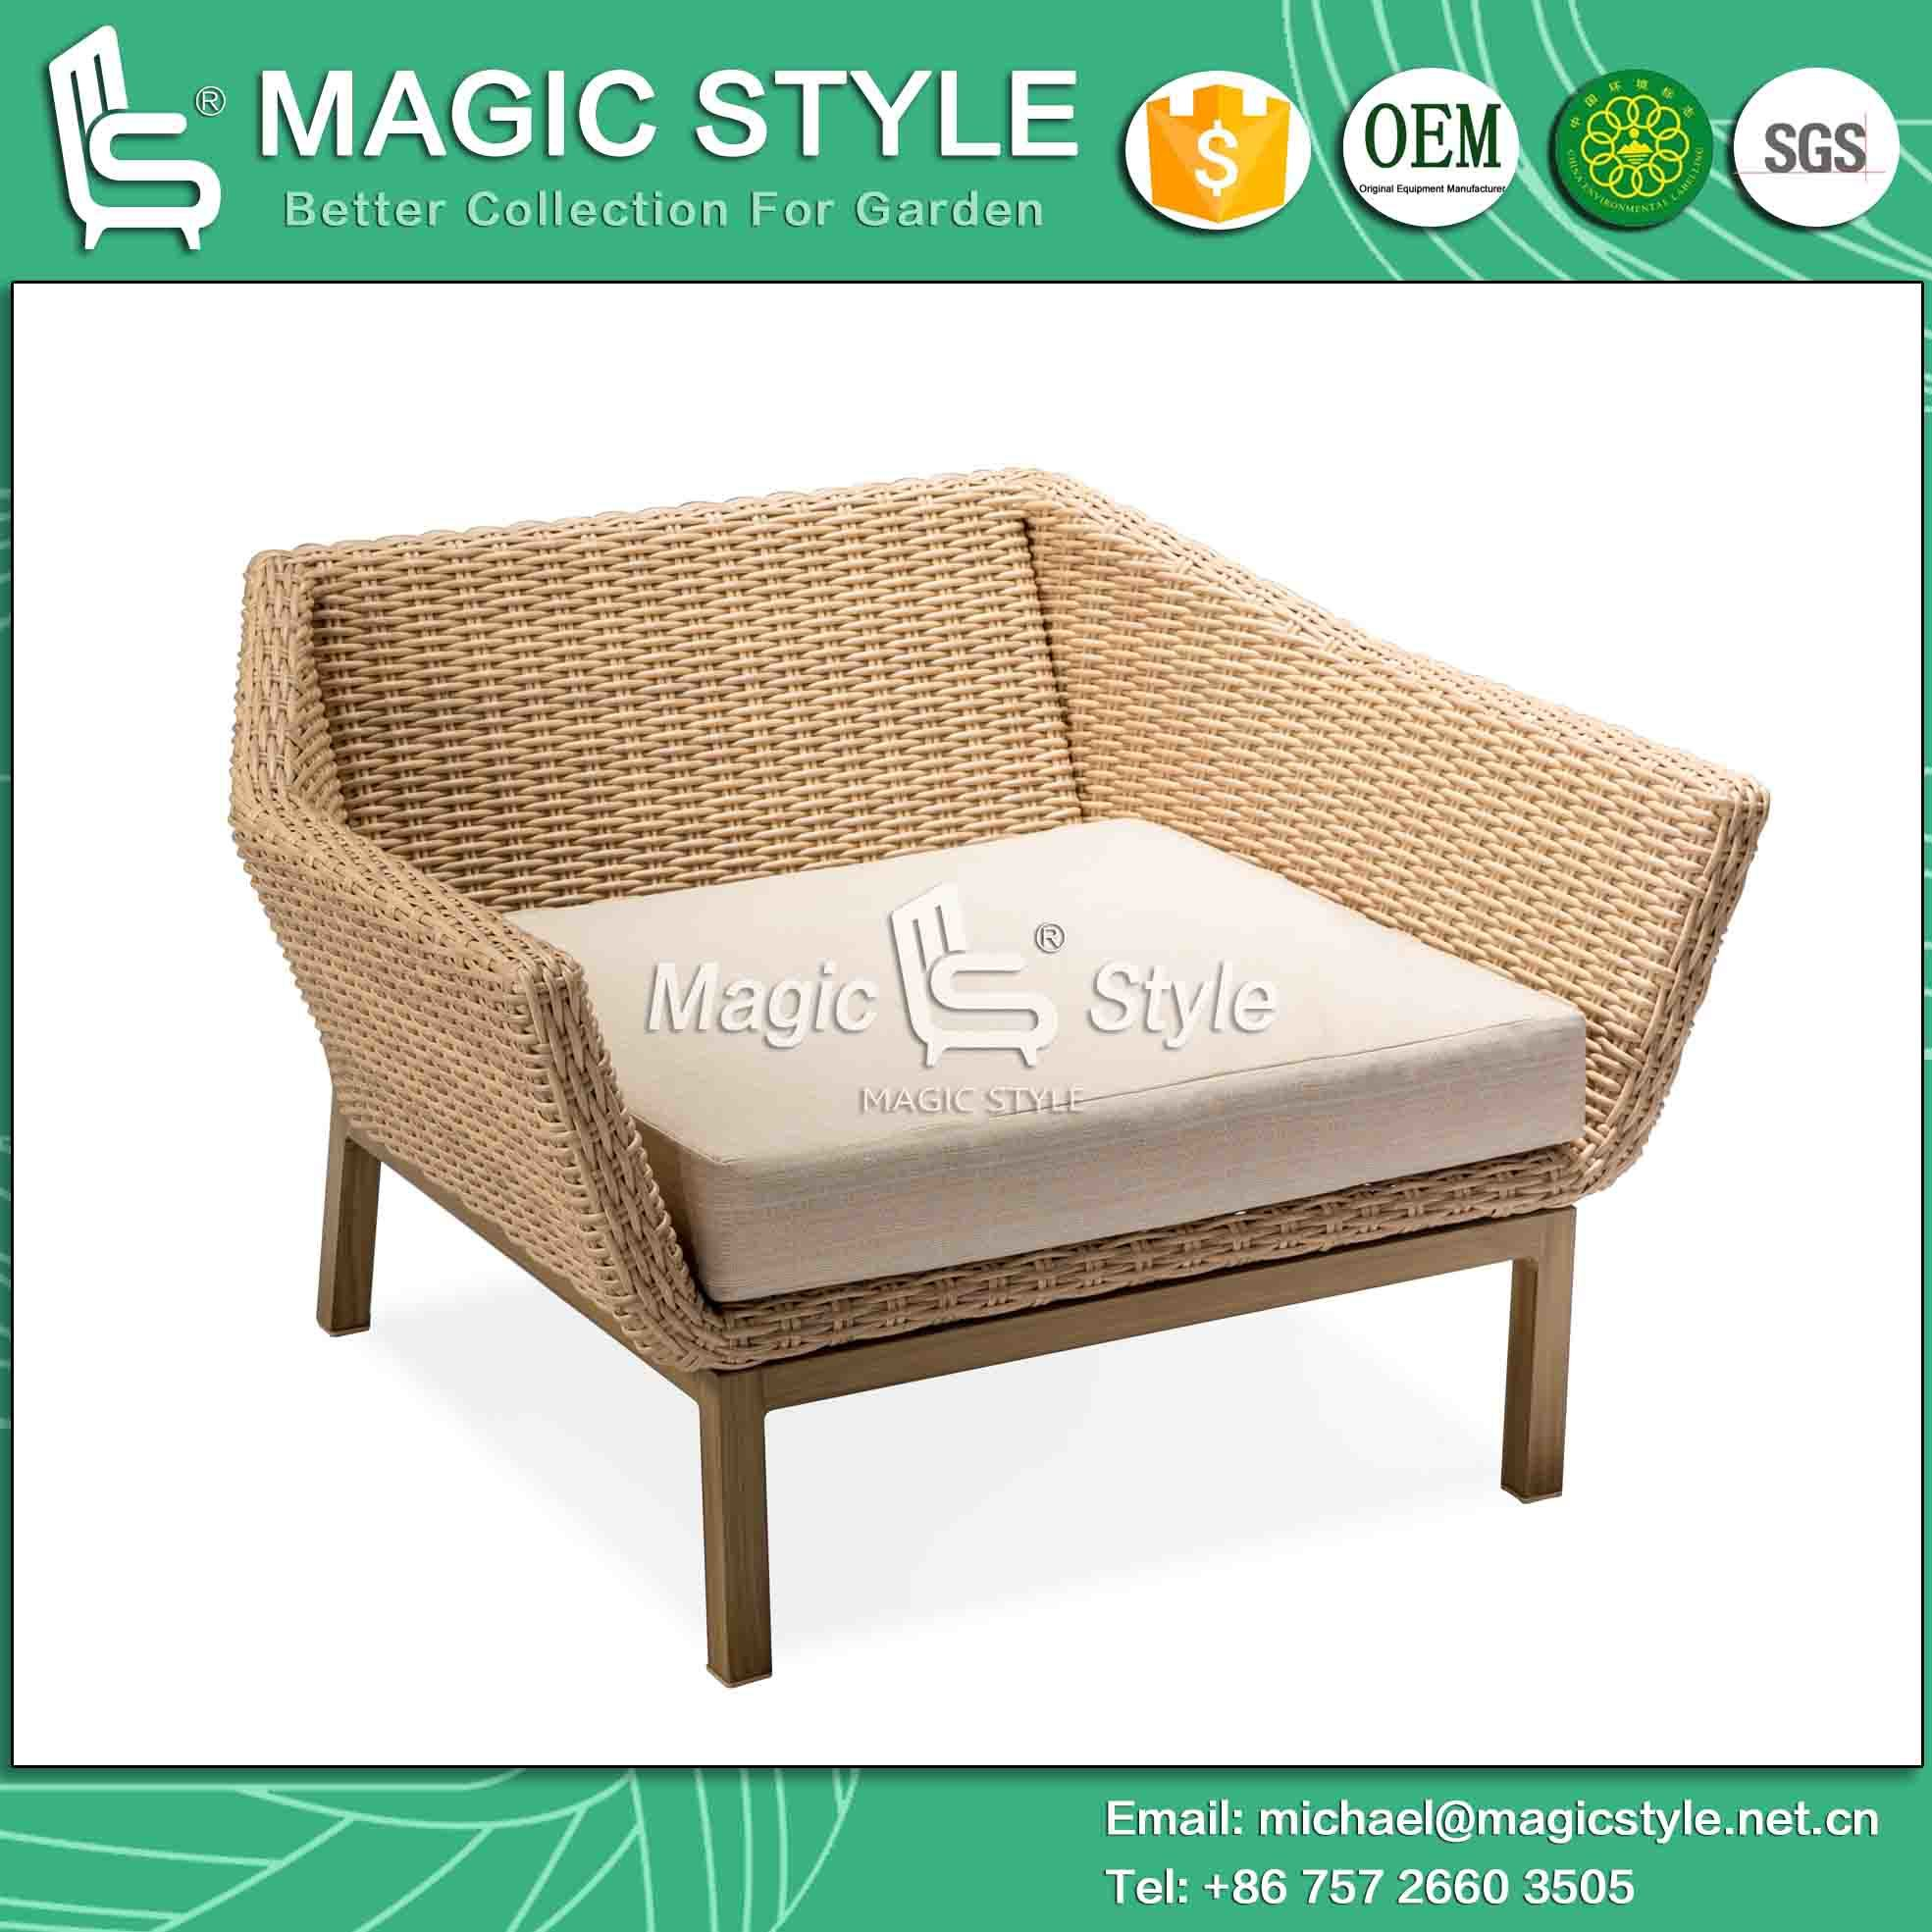 Garden Sofa with Cushion Outdoor Sofa with Printing Legs Rattan Corner Sofa Set Garden Sofa Set Patio Furniture Wicker Furniture